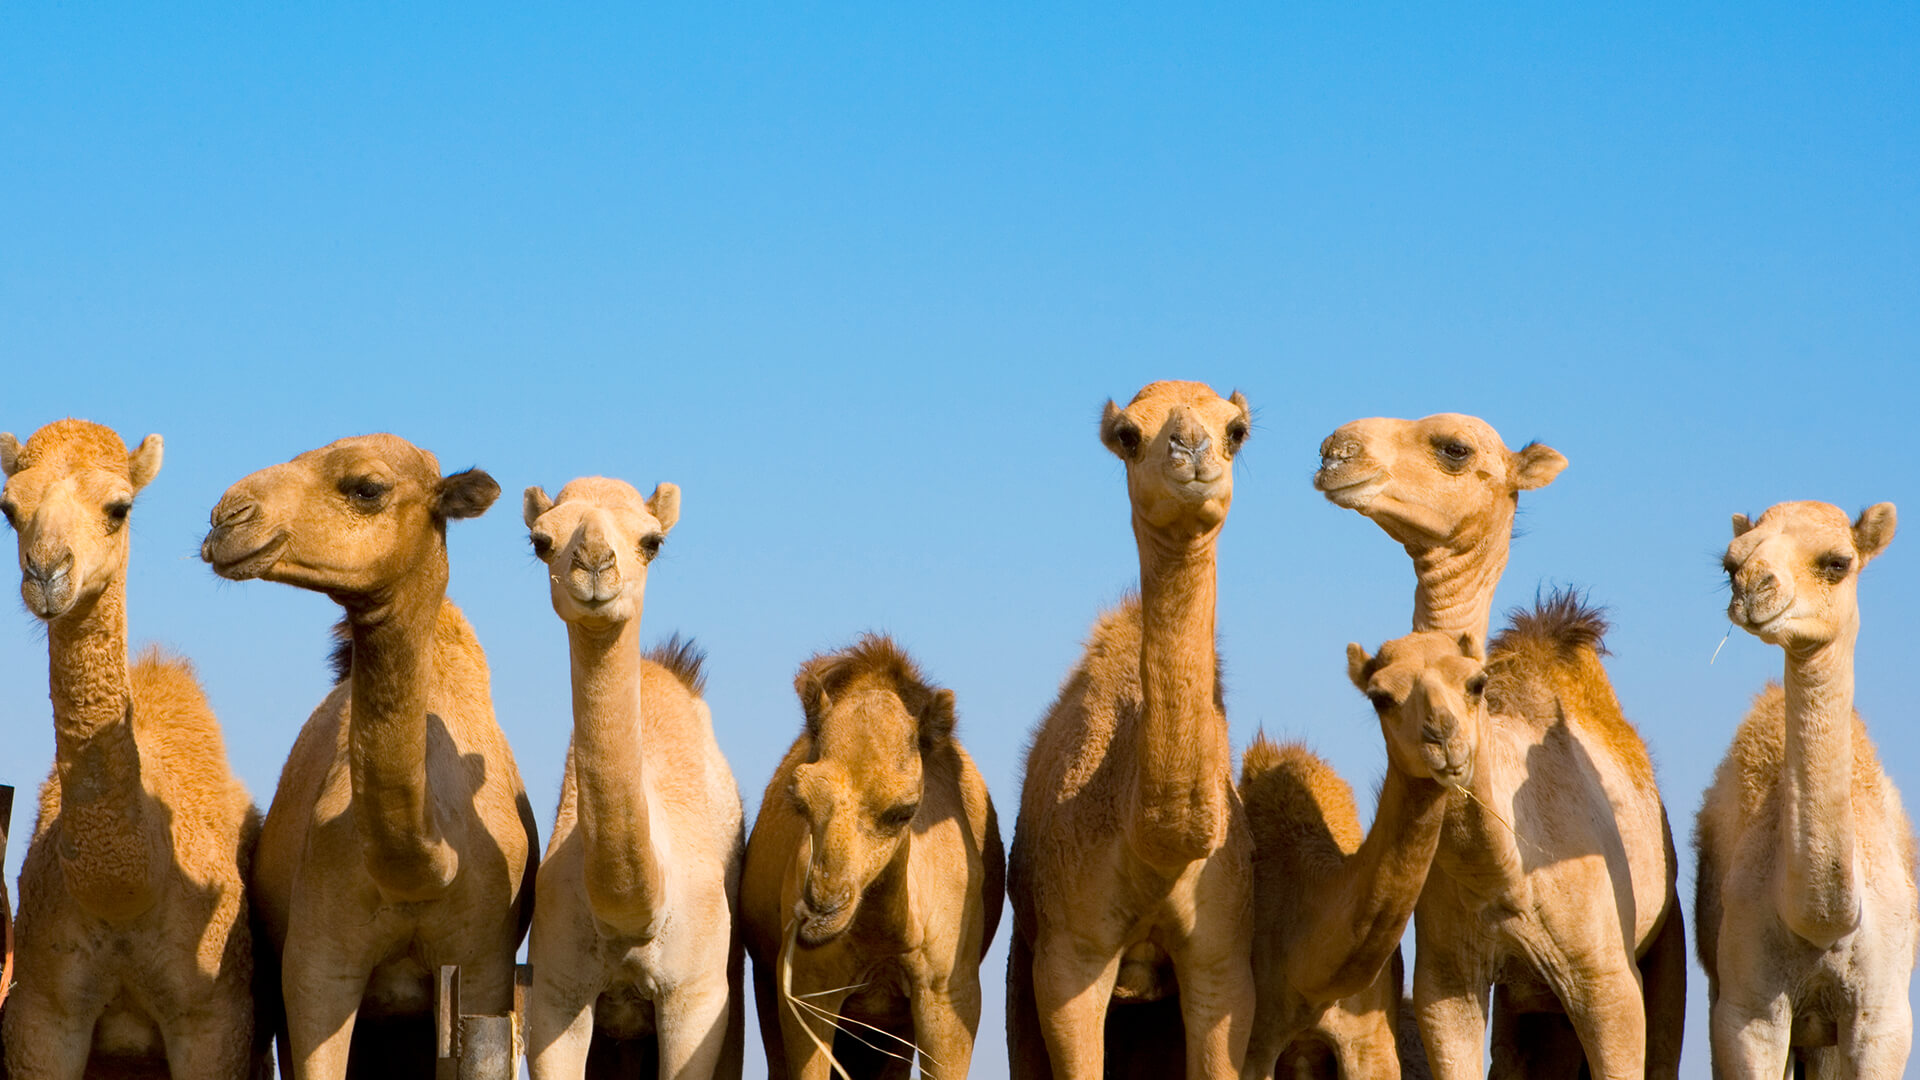 GCC Camel Dairy Market 2020-2025 | Industry Trends, Share, Size, COVID-19 Impact Analysis, Growth, Demand and Opportunities